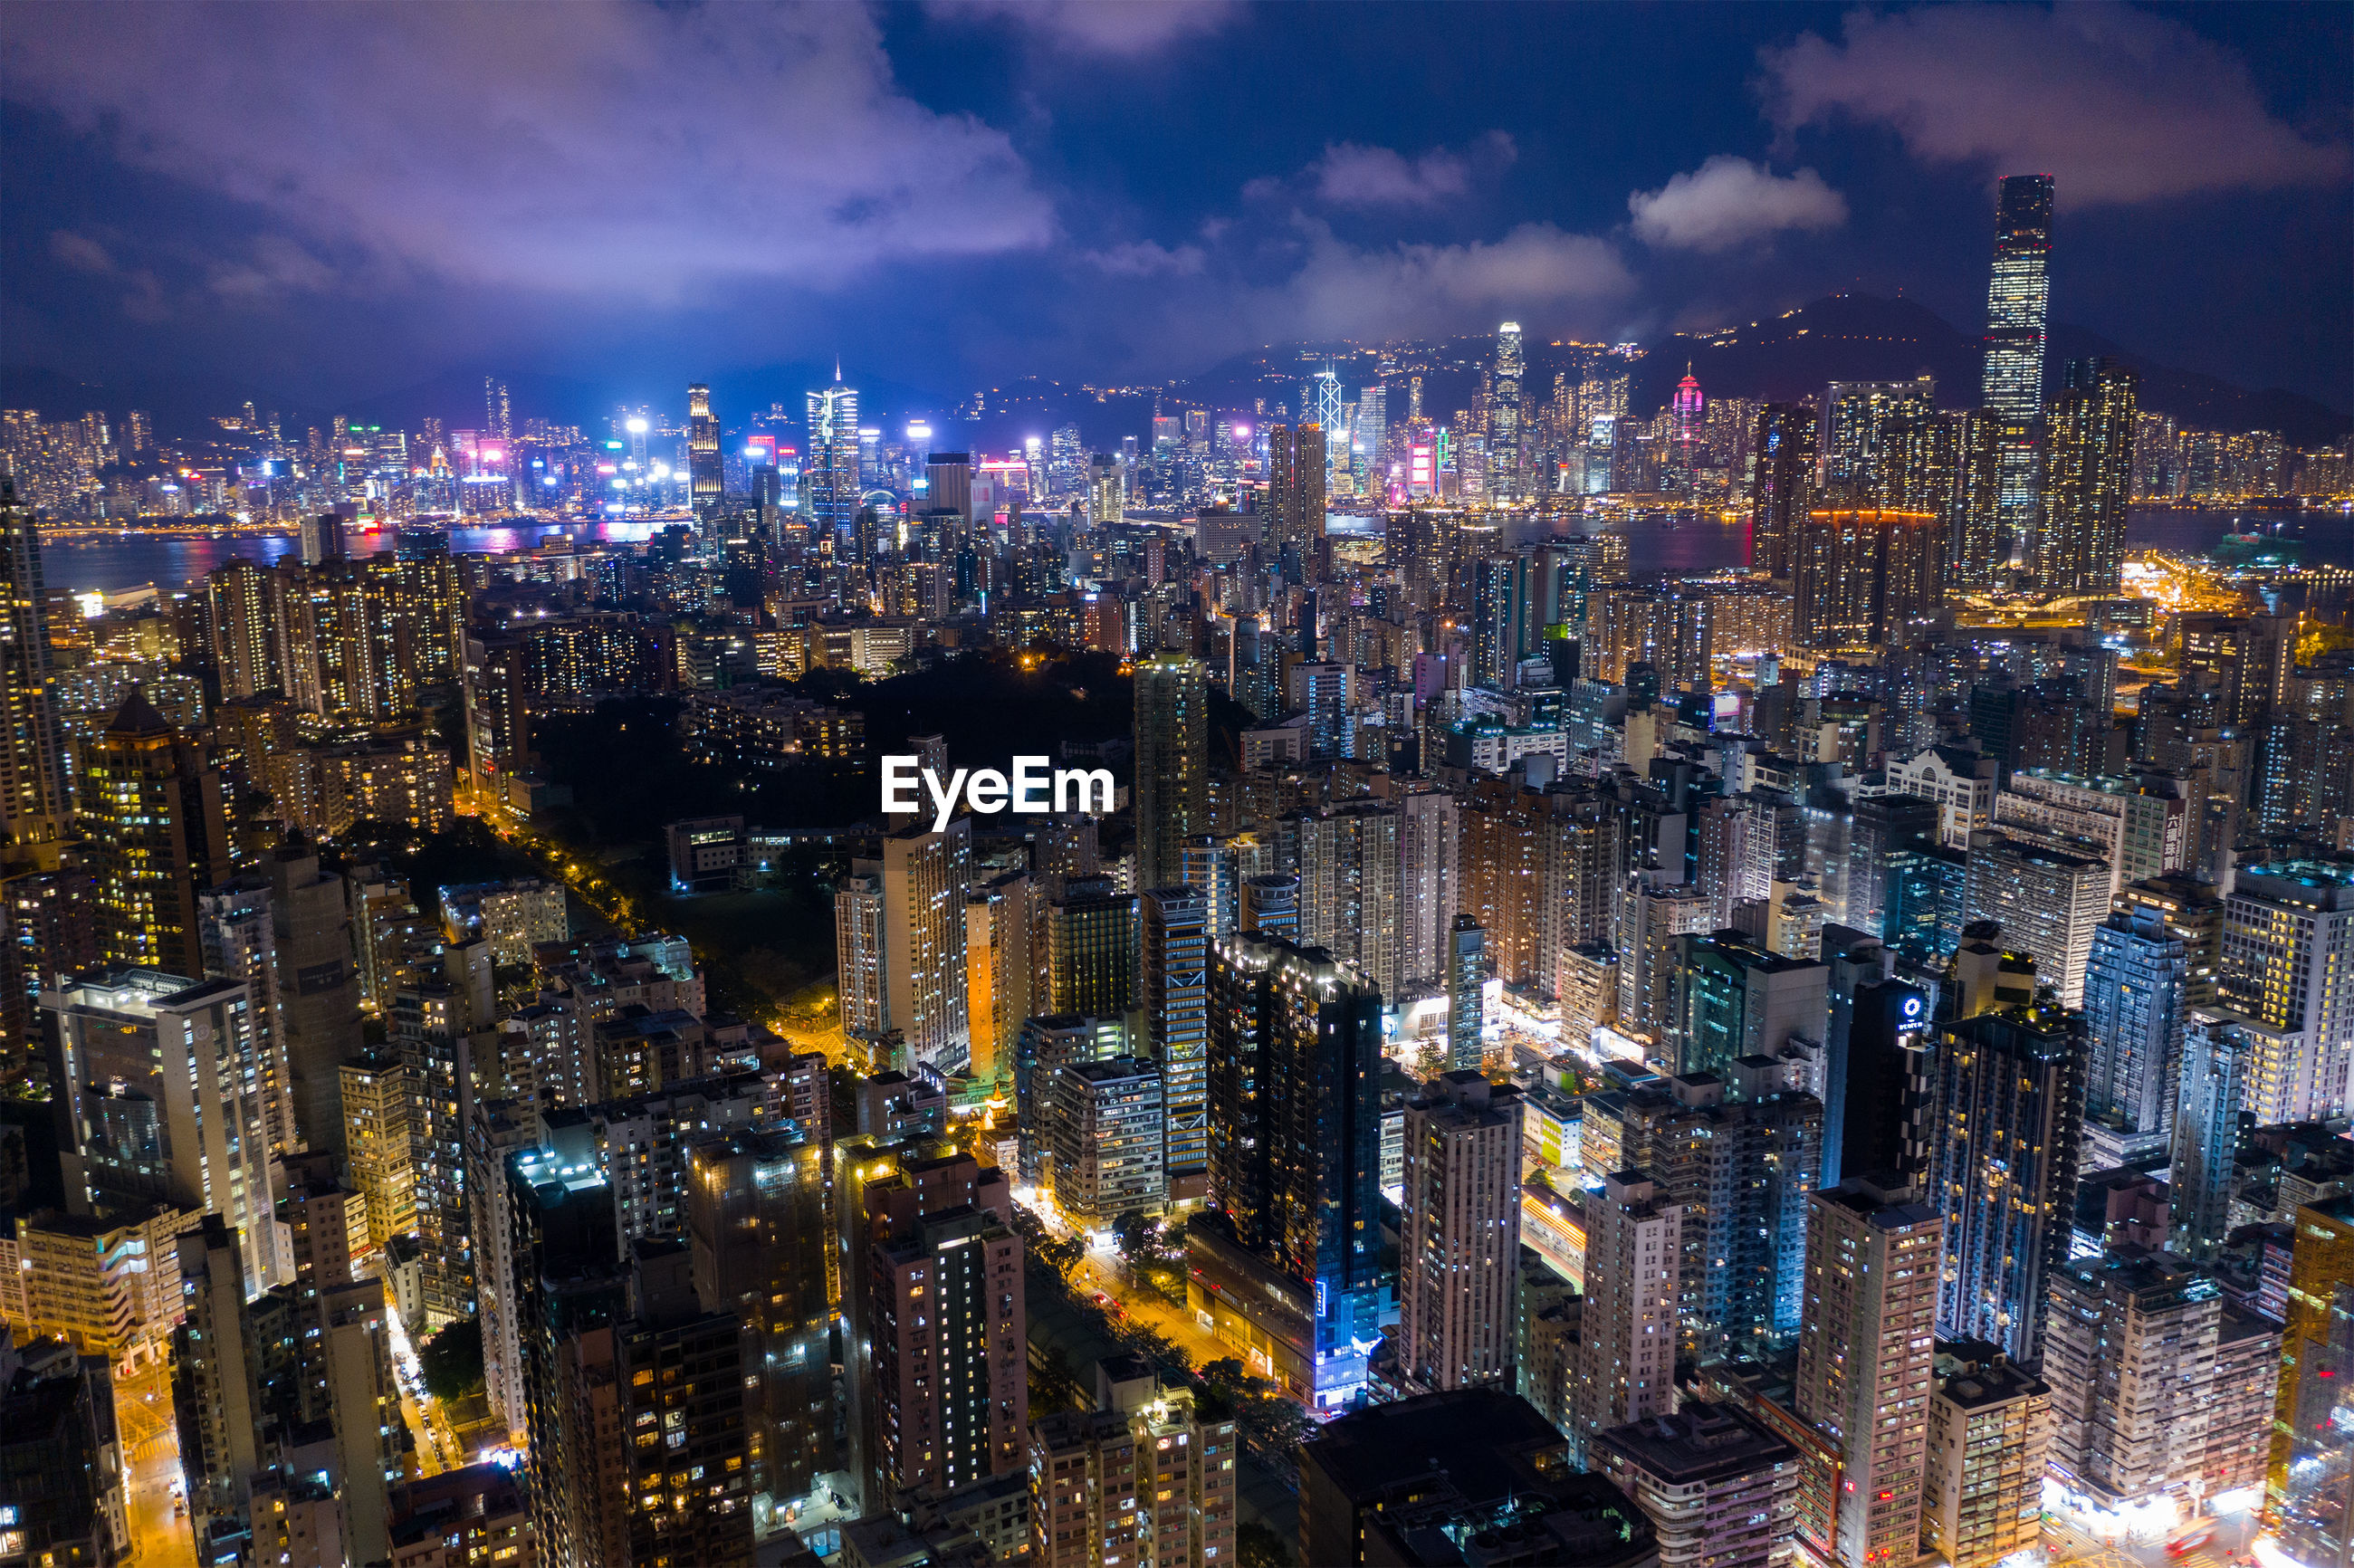 Aerial view of modern buildings in city at night